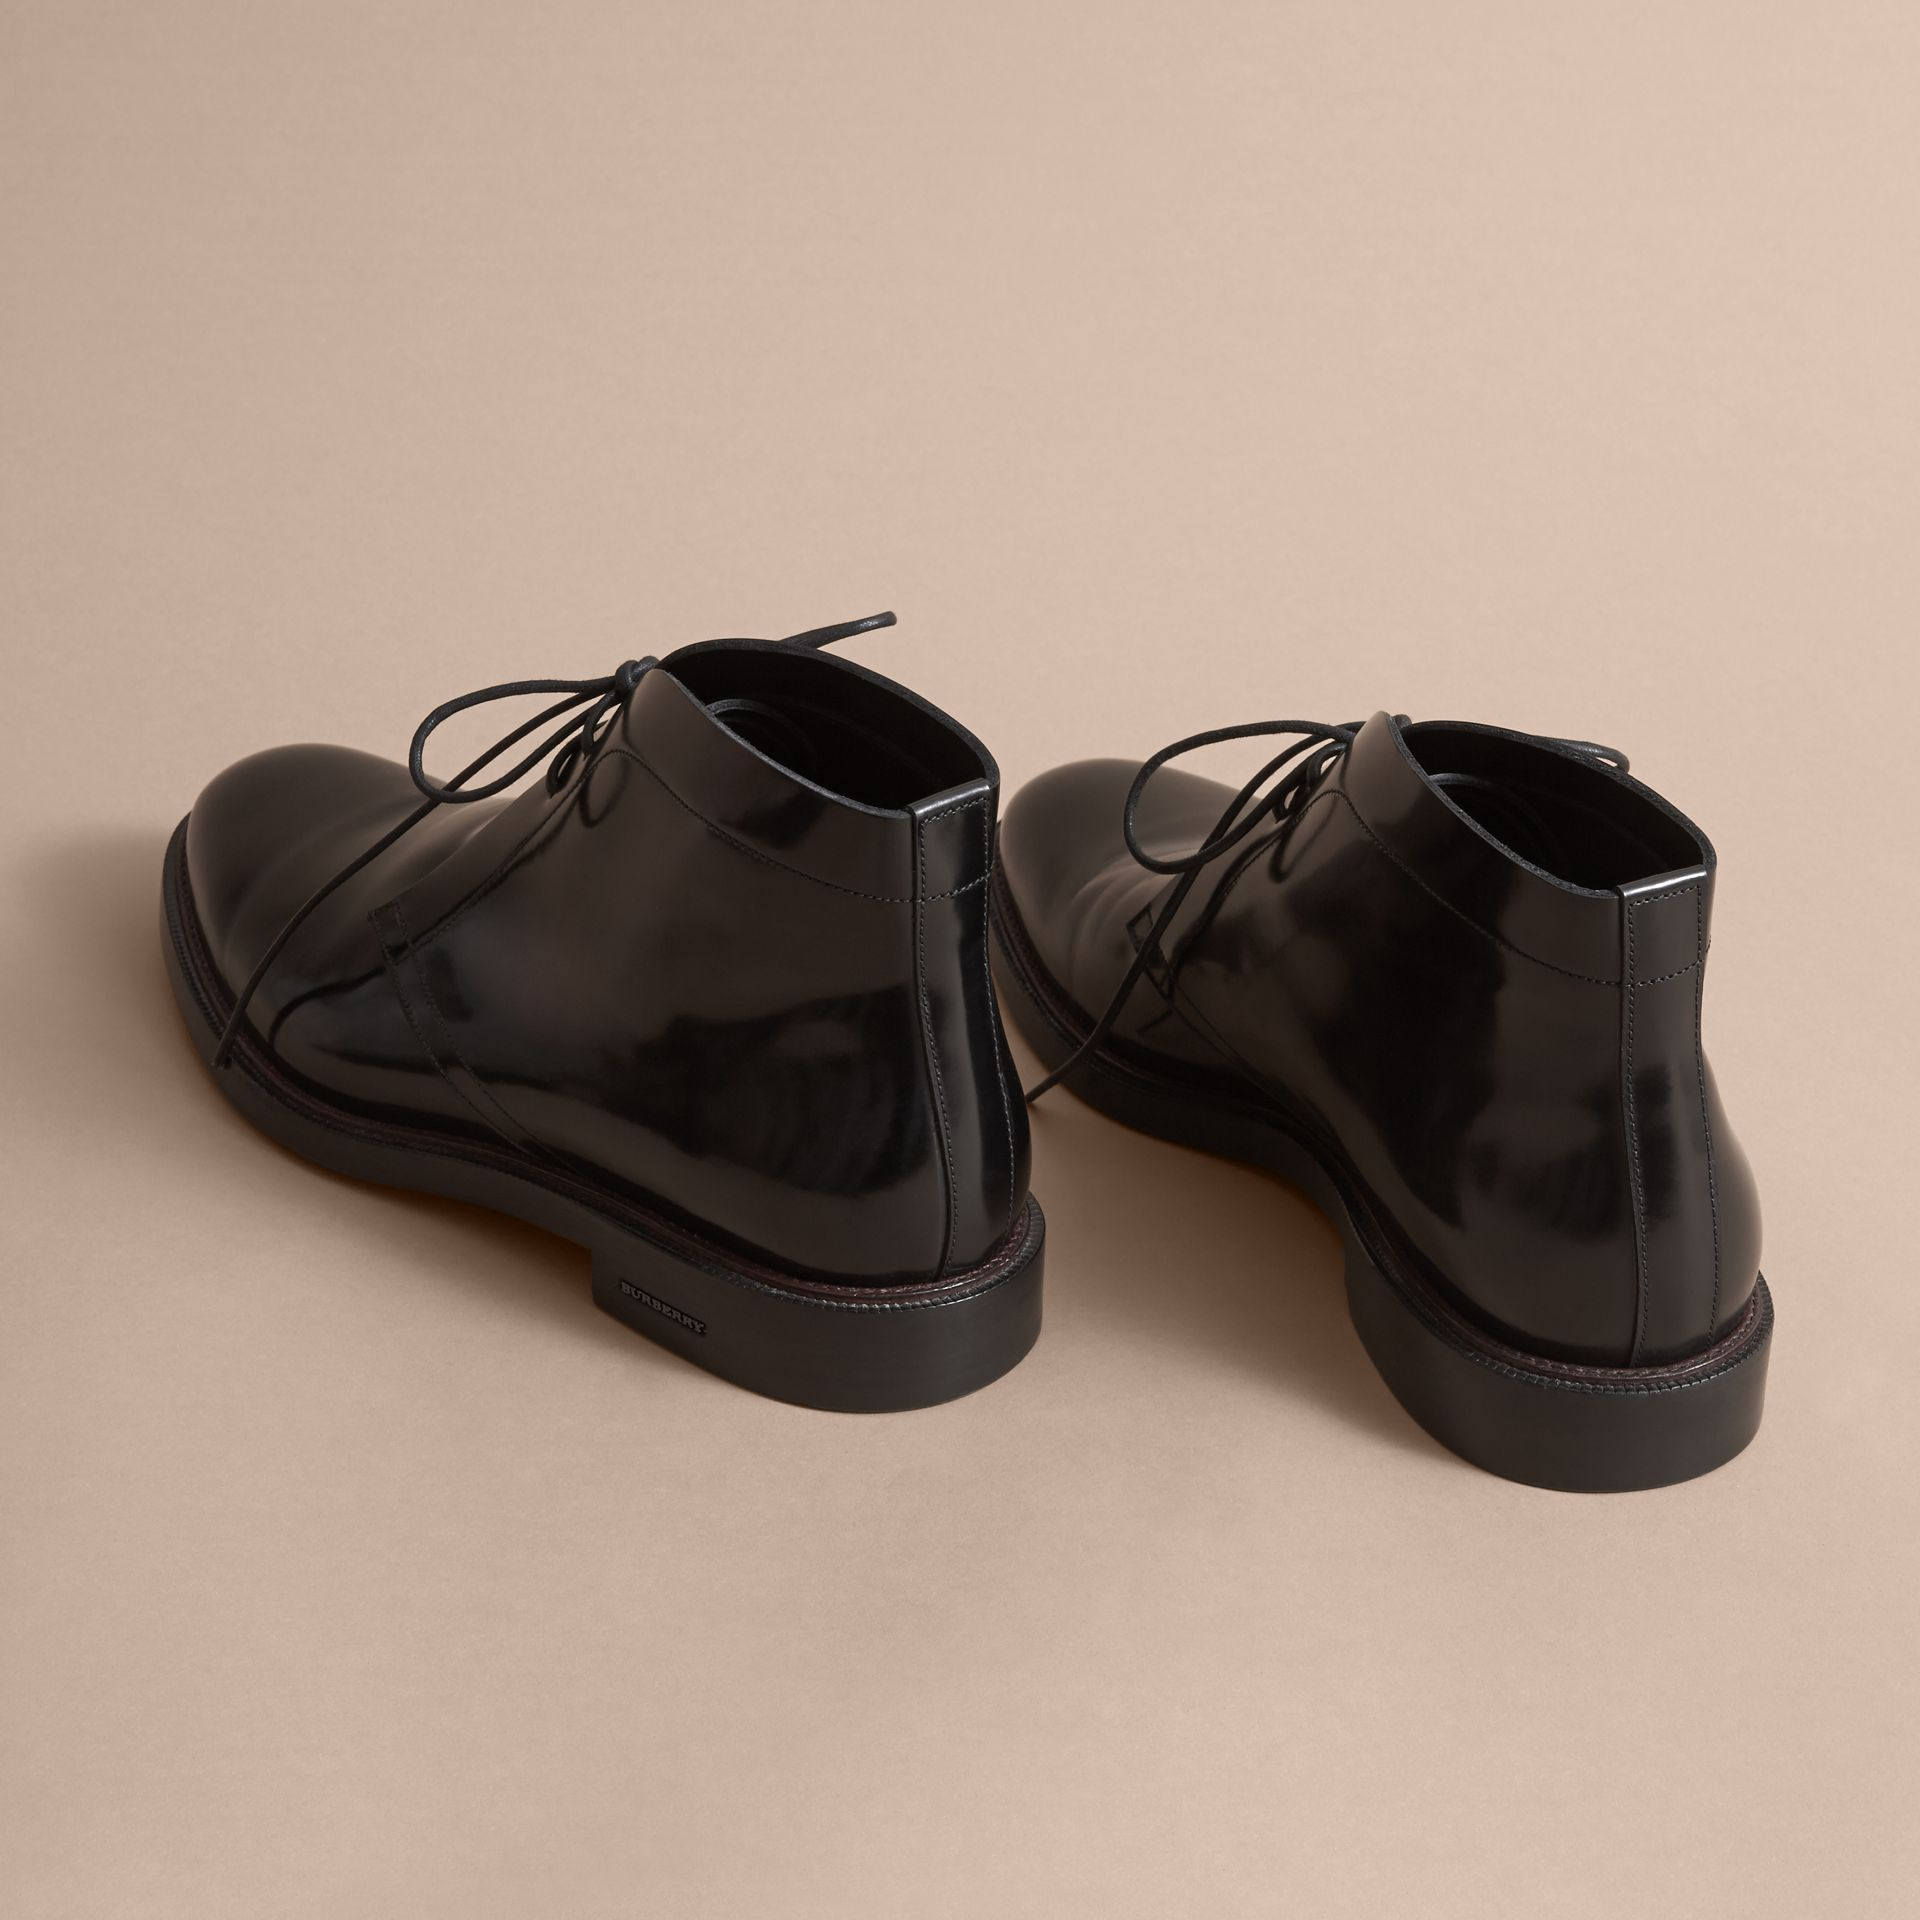 Polished Leather Desert Boots in Black - Men | Burberry United States - gallery image 4